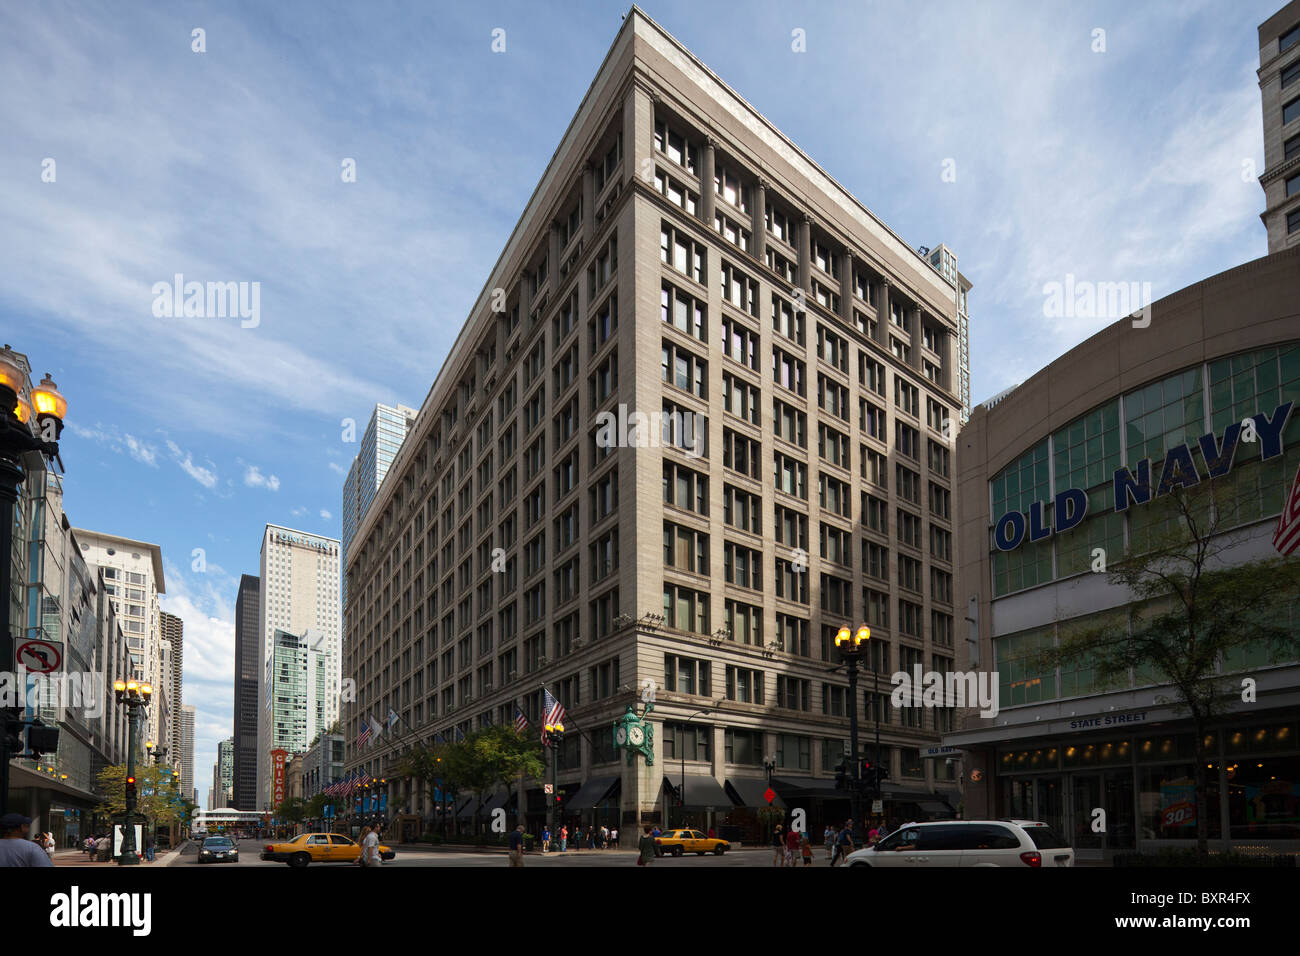 Marshall Field's, now Macy's, department store, State Street, Chicago, Illinois, USA - Stock Image